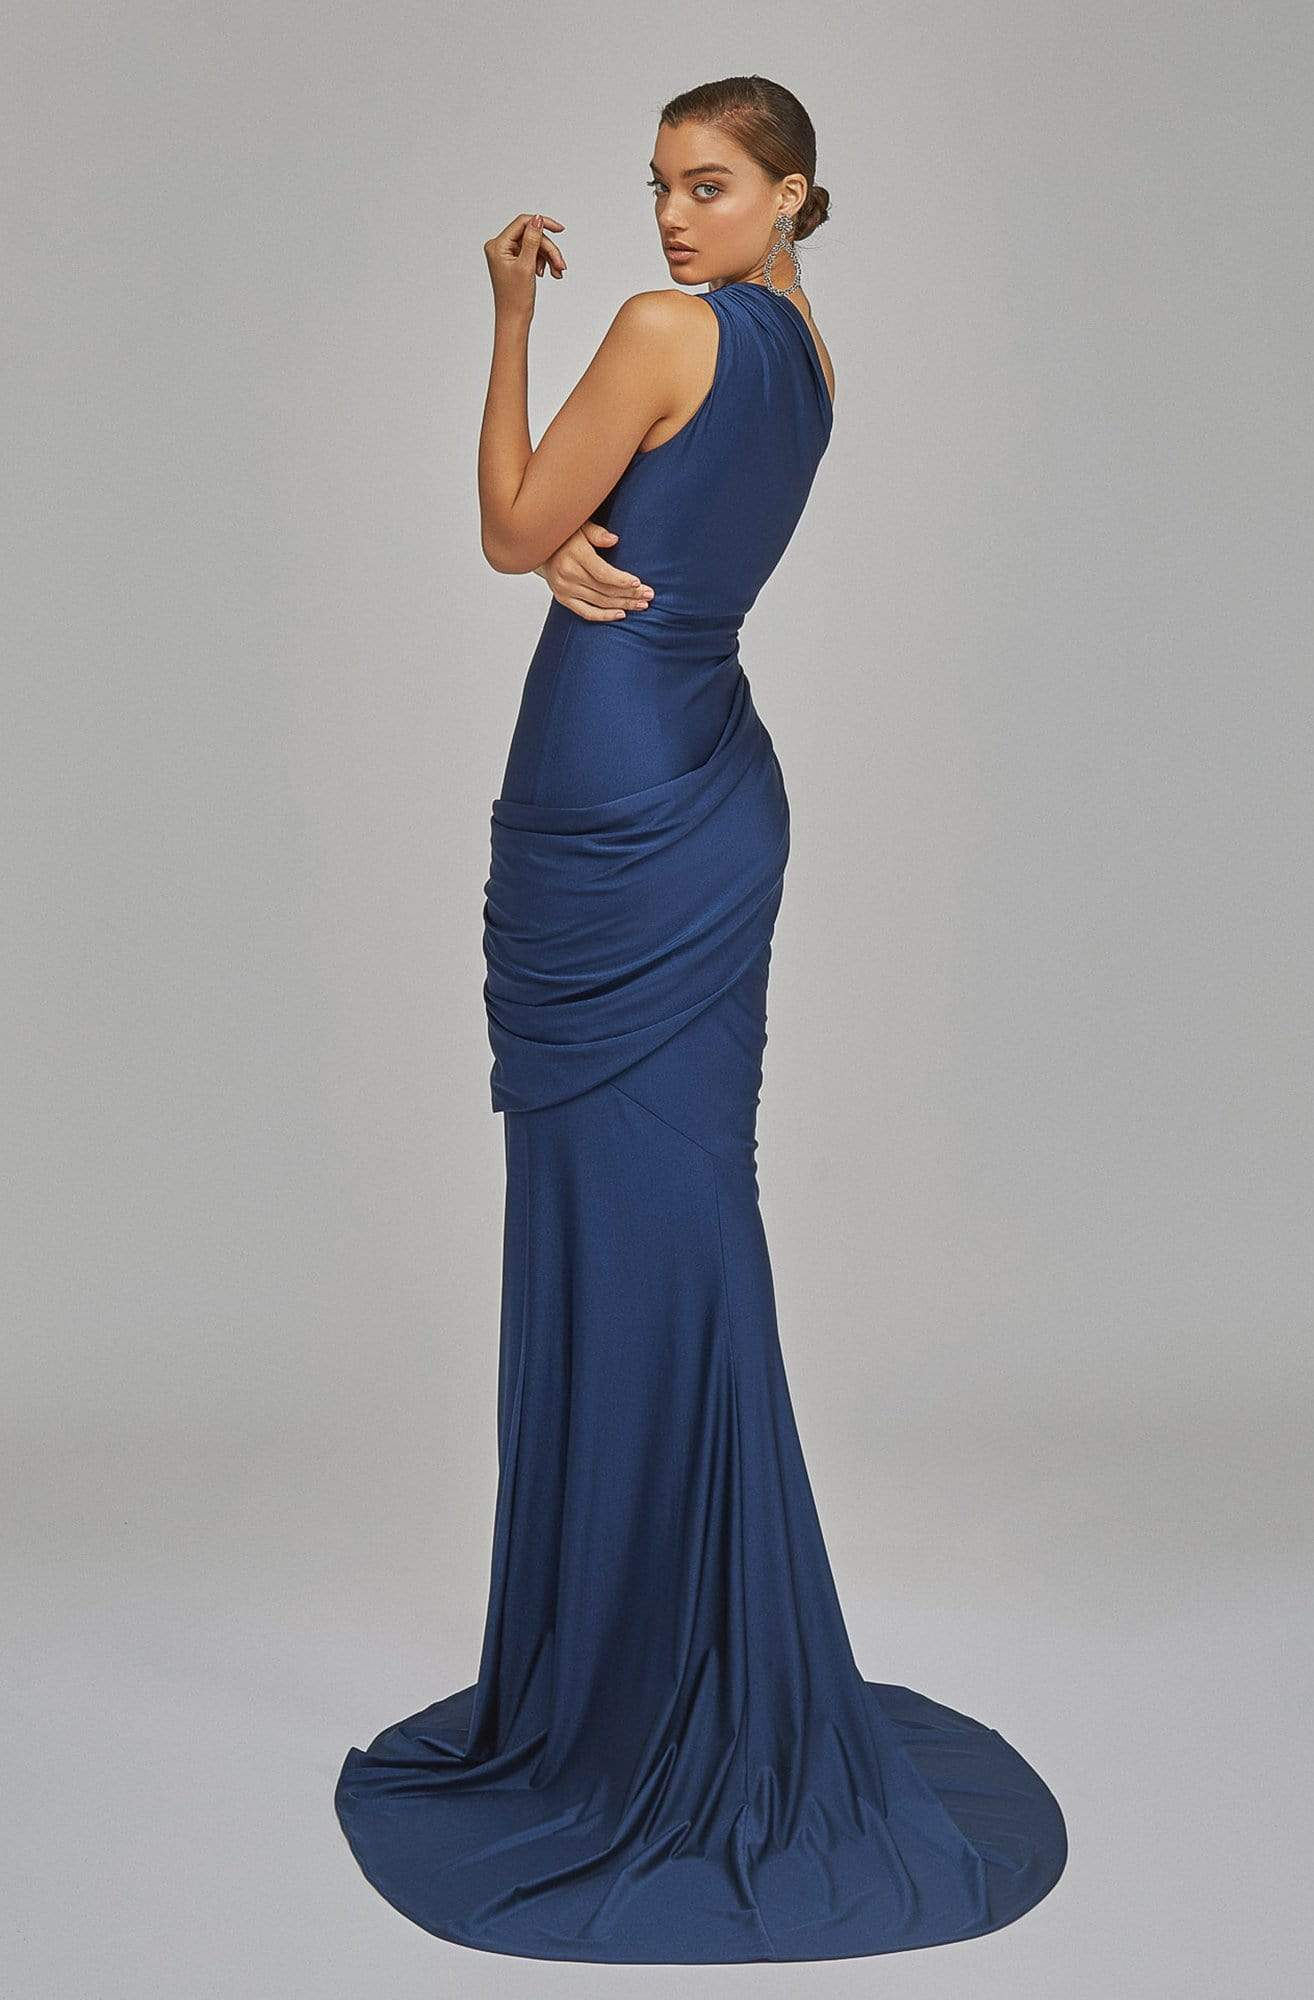 Terani Couture - 1921E0123 One Shoulder Draped Jersey Mermaid Gown In Blue